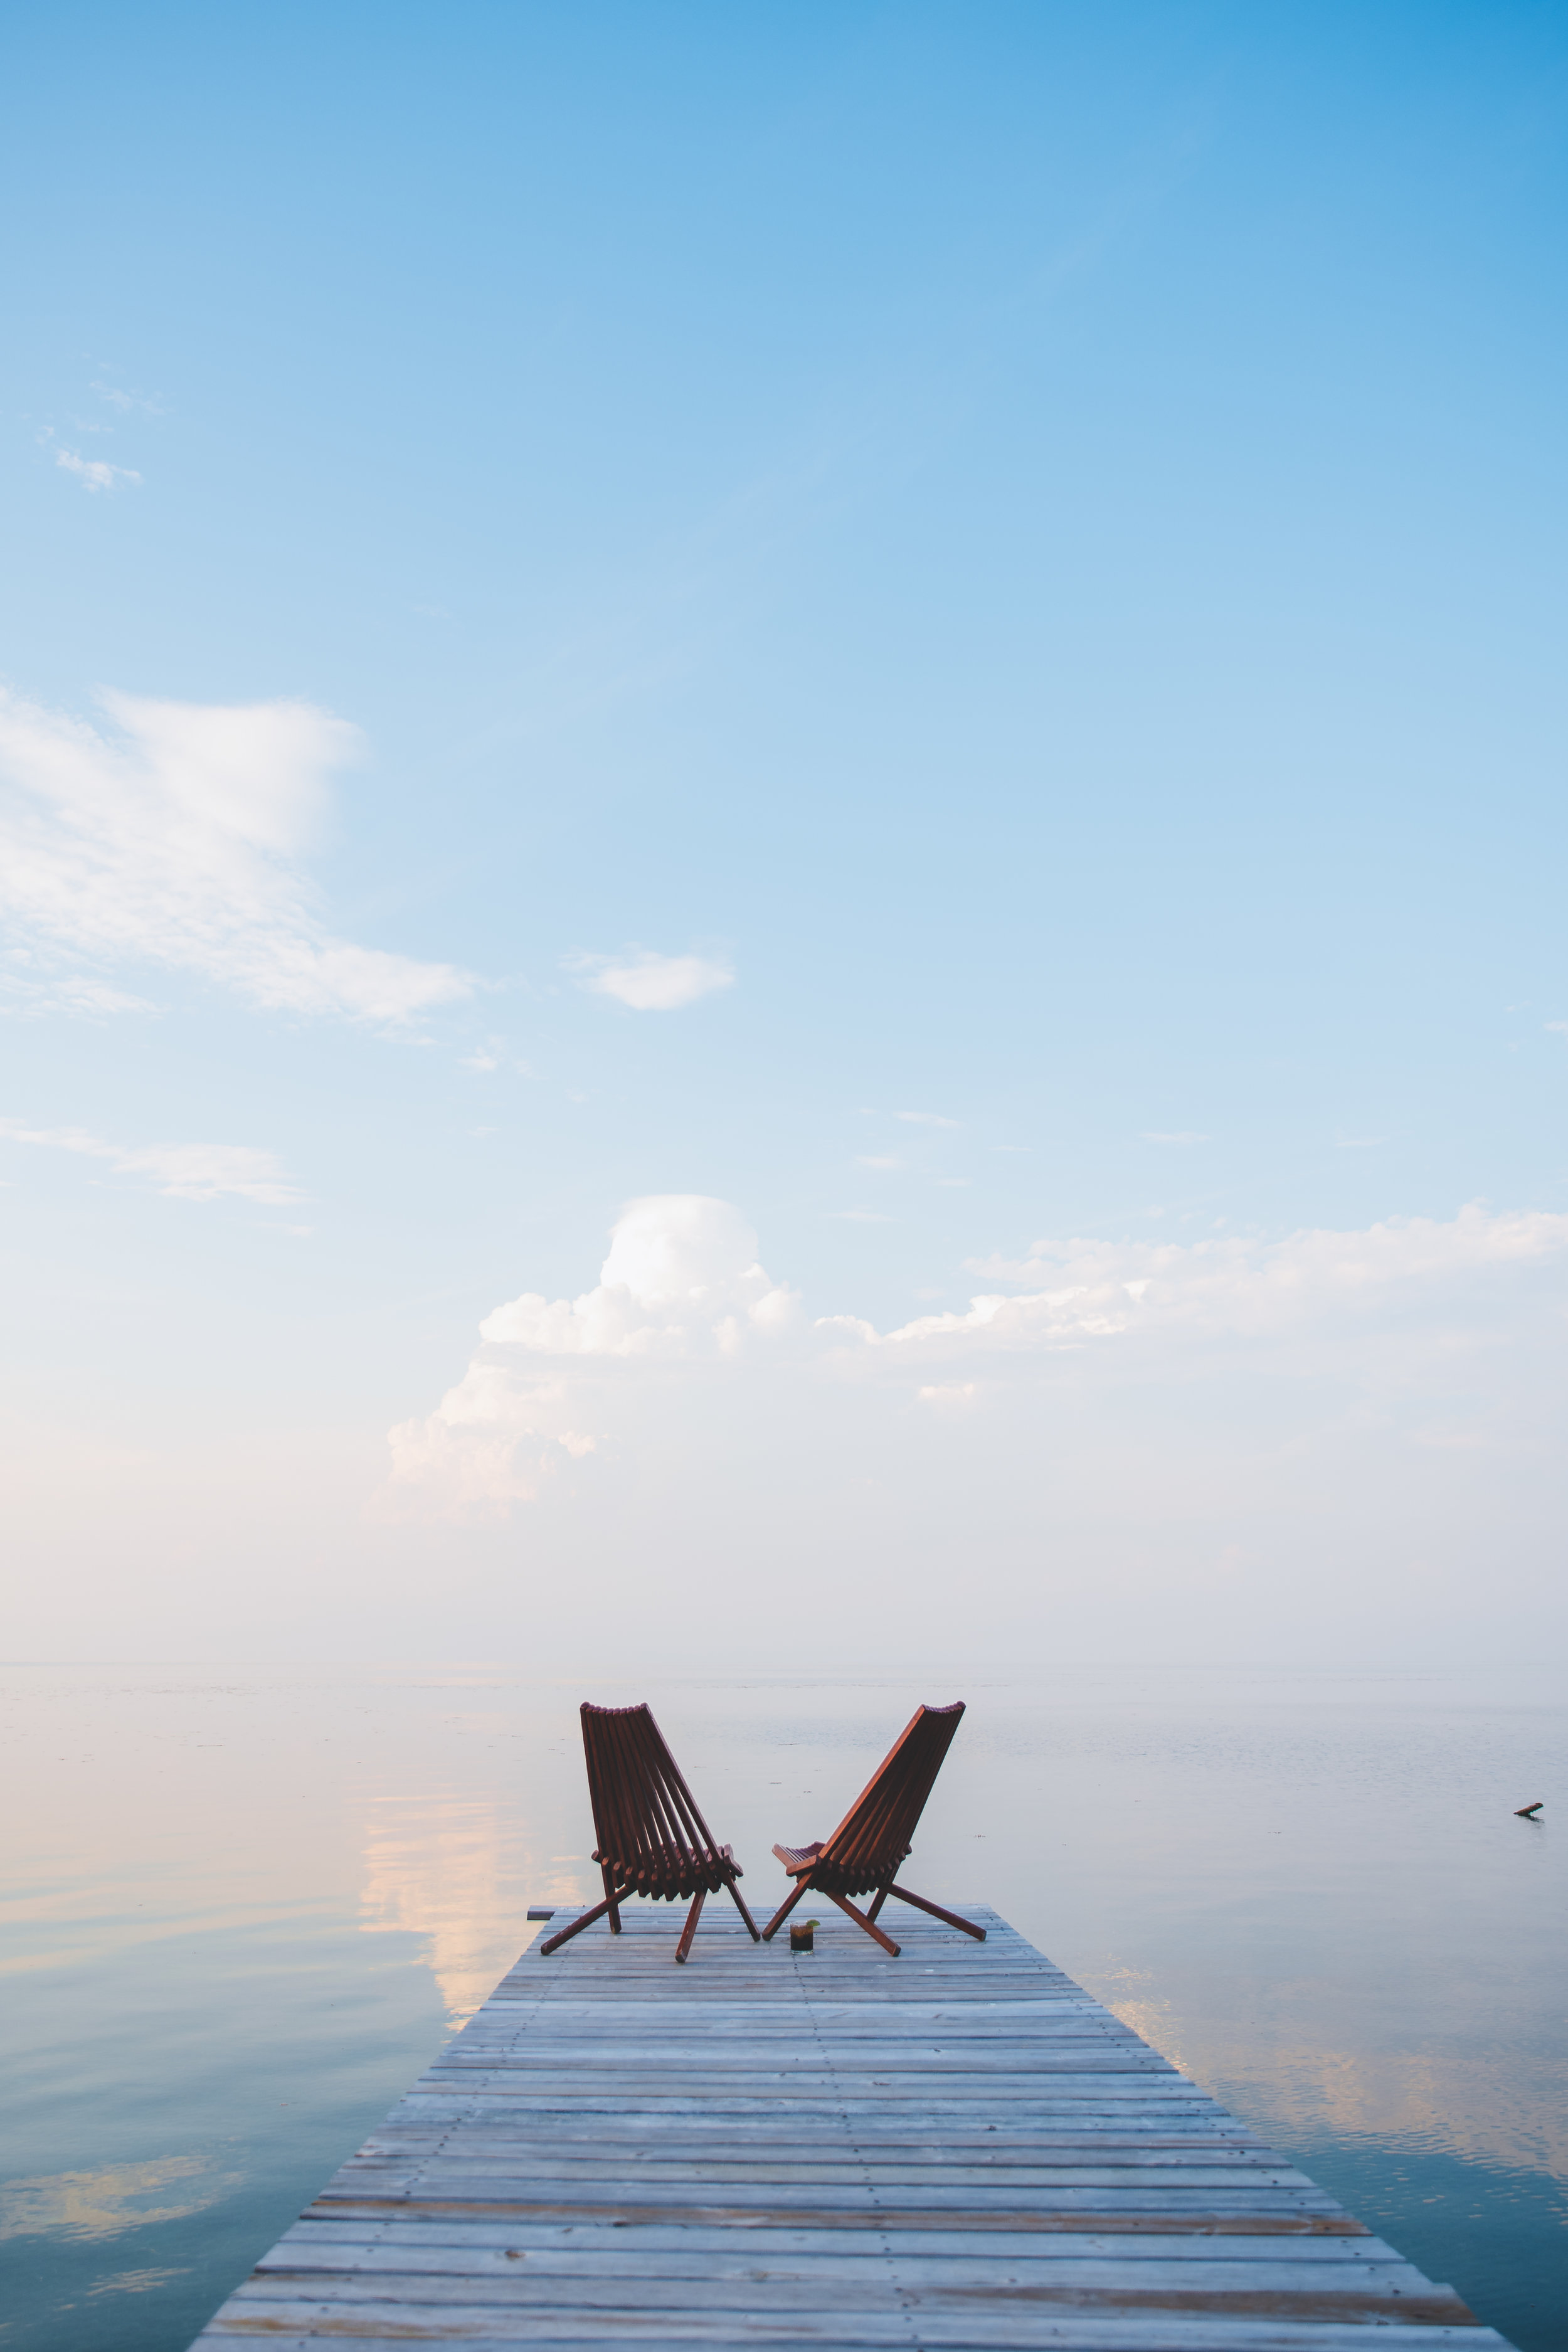 Belize - A tiny island off the coast of Belize, scuba diving three times a day every day, and a good dose of family time